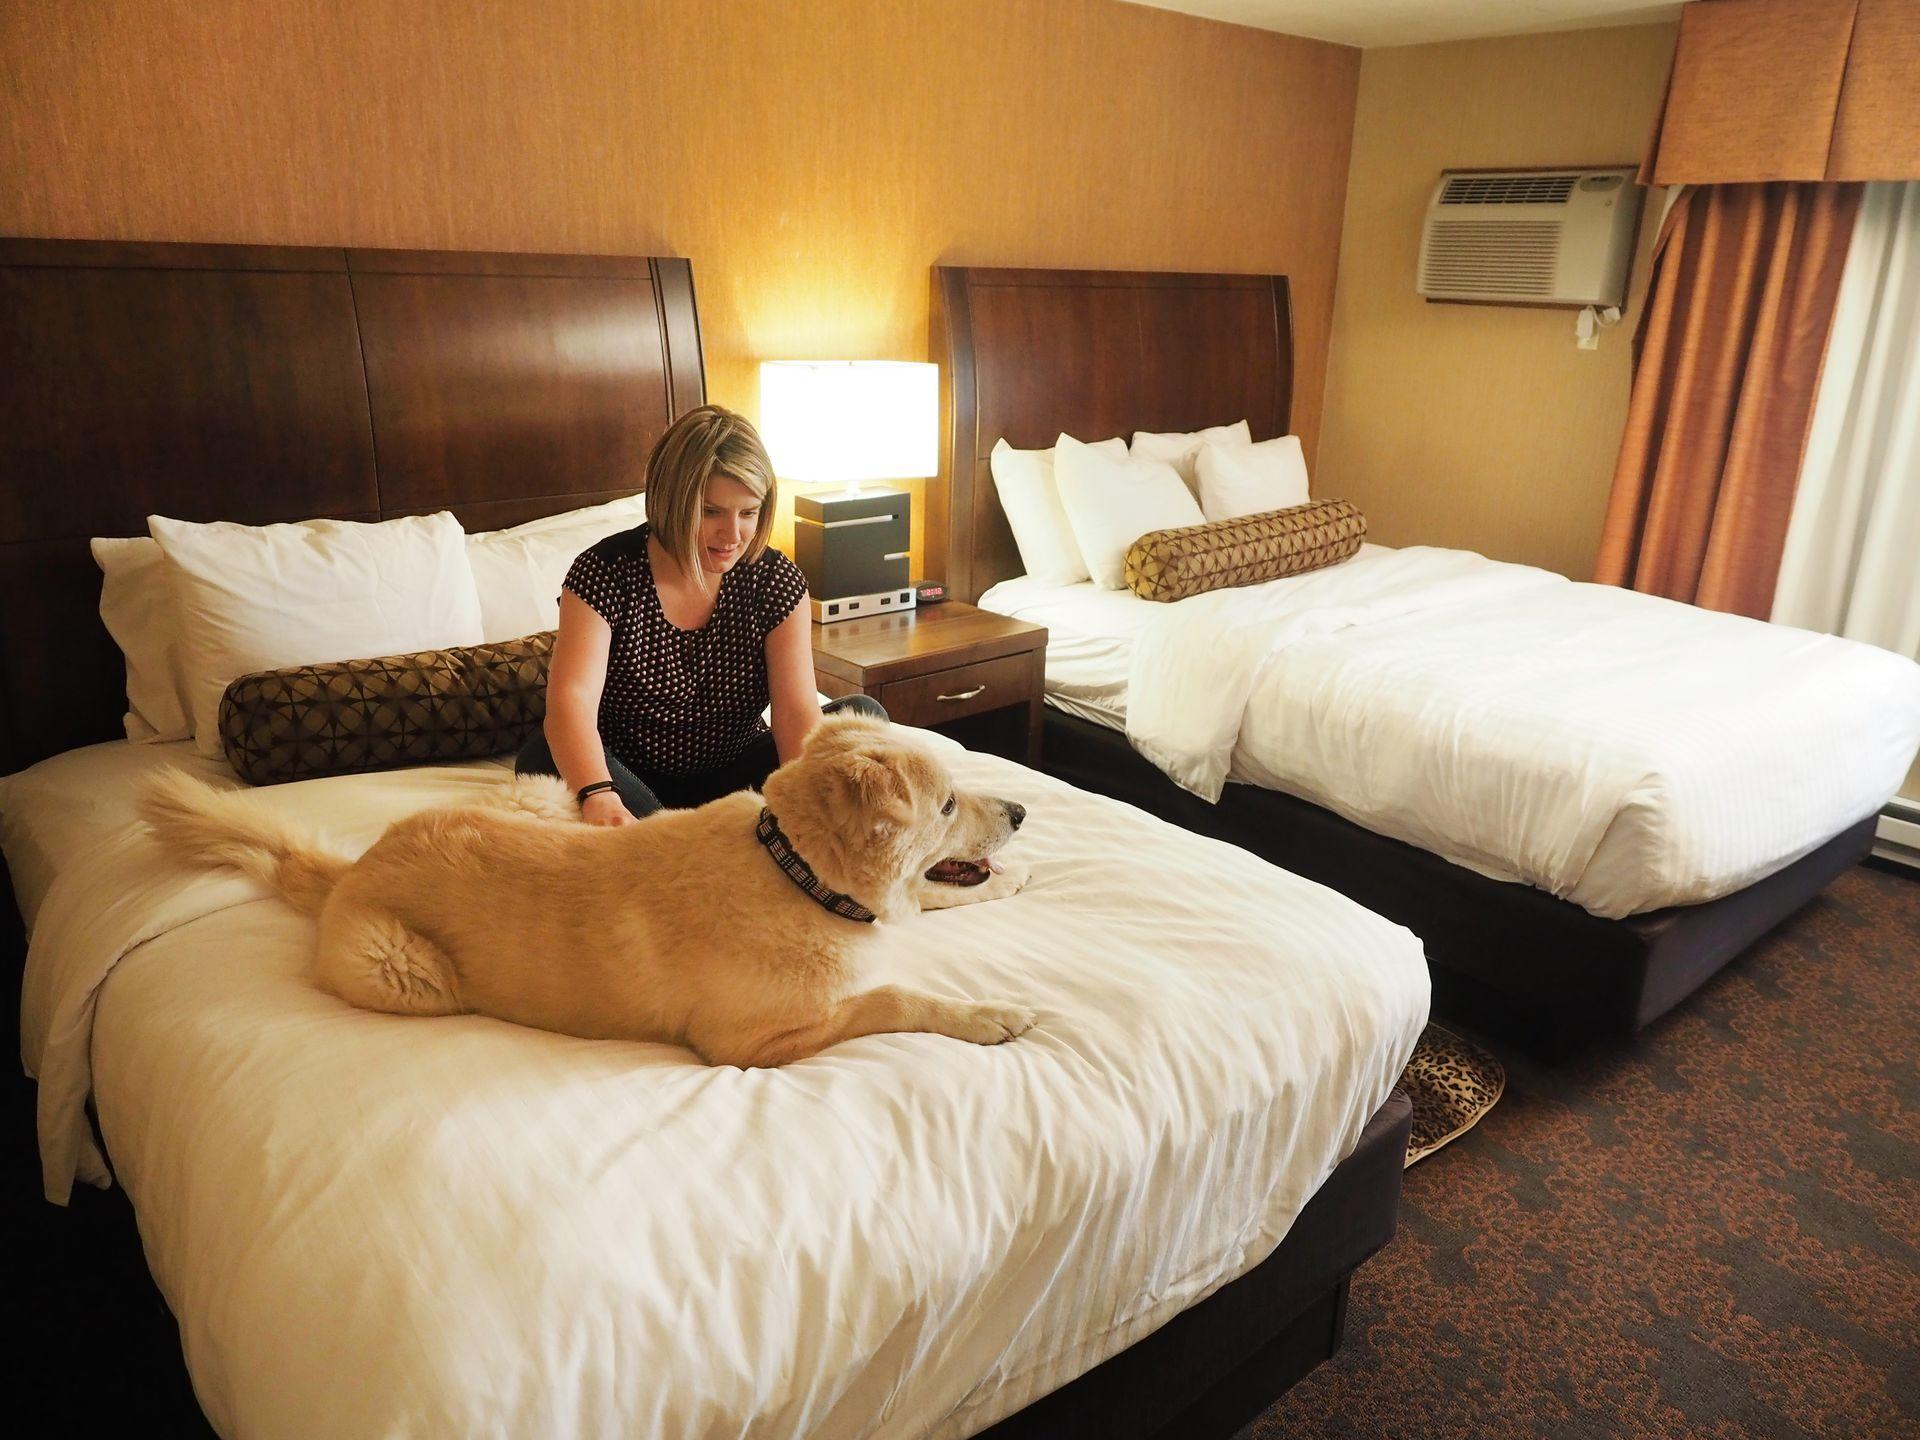 woman and dog sitting on one of two beds in room